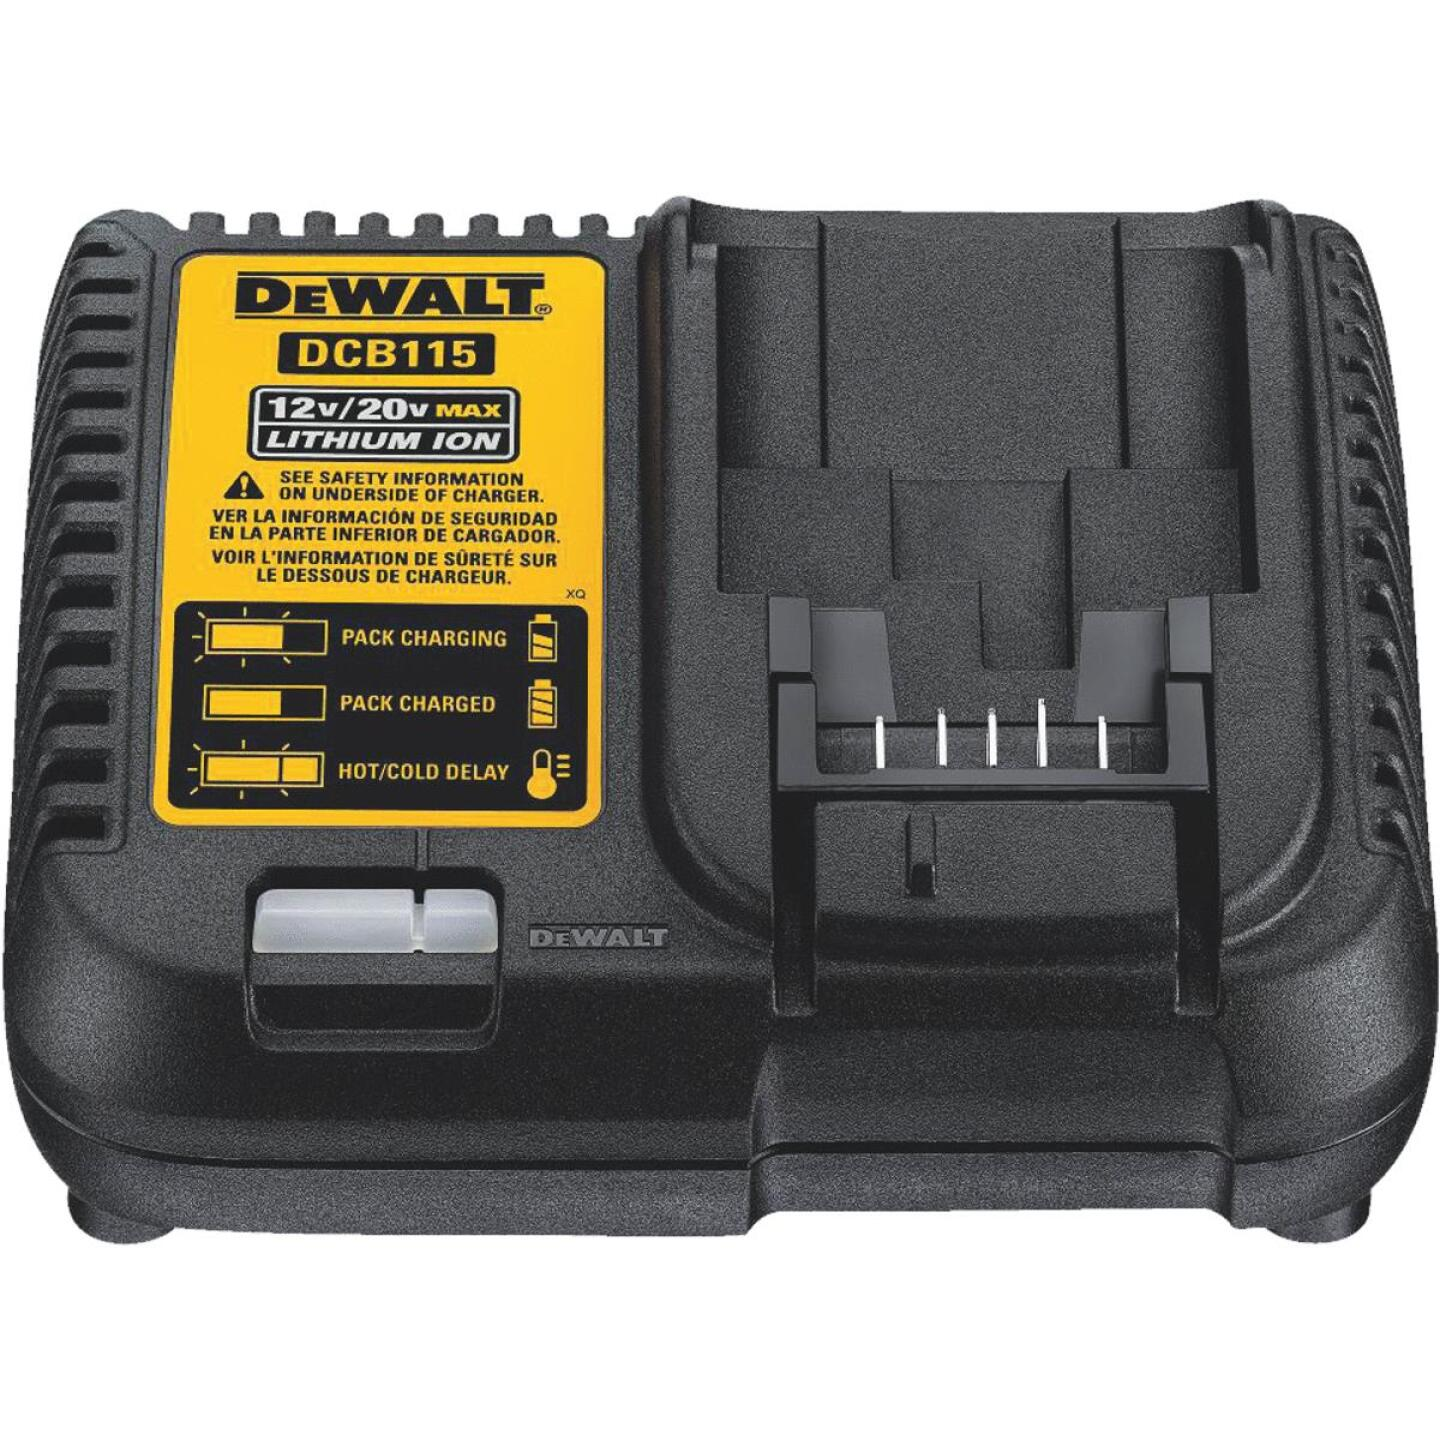 DeWalt 12-Volt to 20-Volt MAX Lithium-Ion Battery Charger Image 1